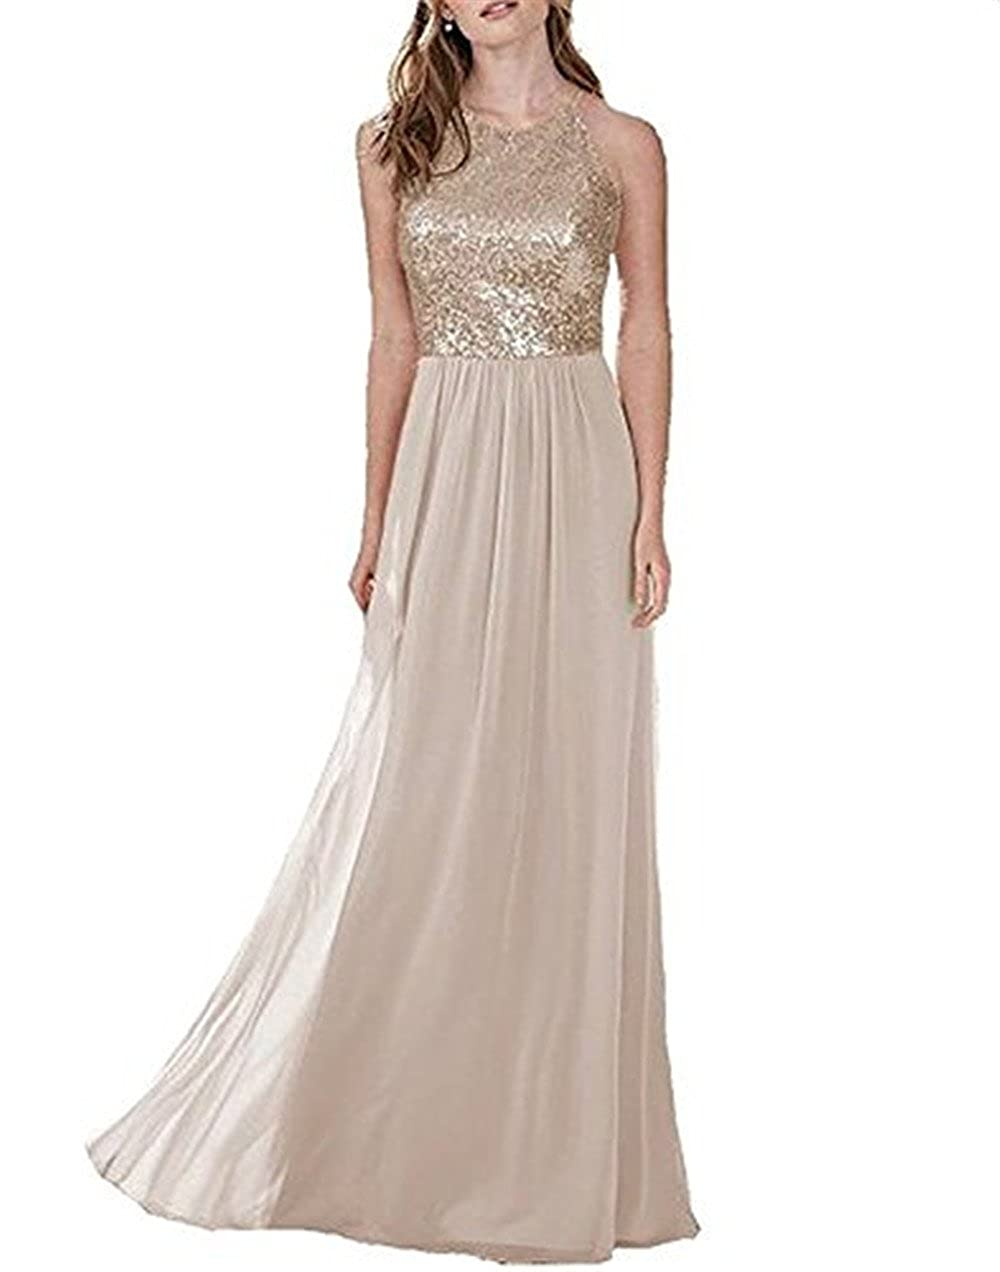 7ebf4326b9e Sequin and Chiffon Sweetheart Neck Bridesmaid Dresses Long Dress can be  used for wedding party